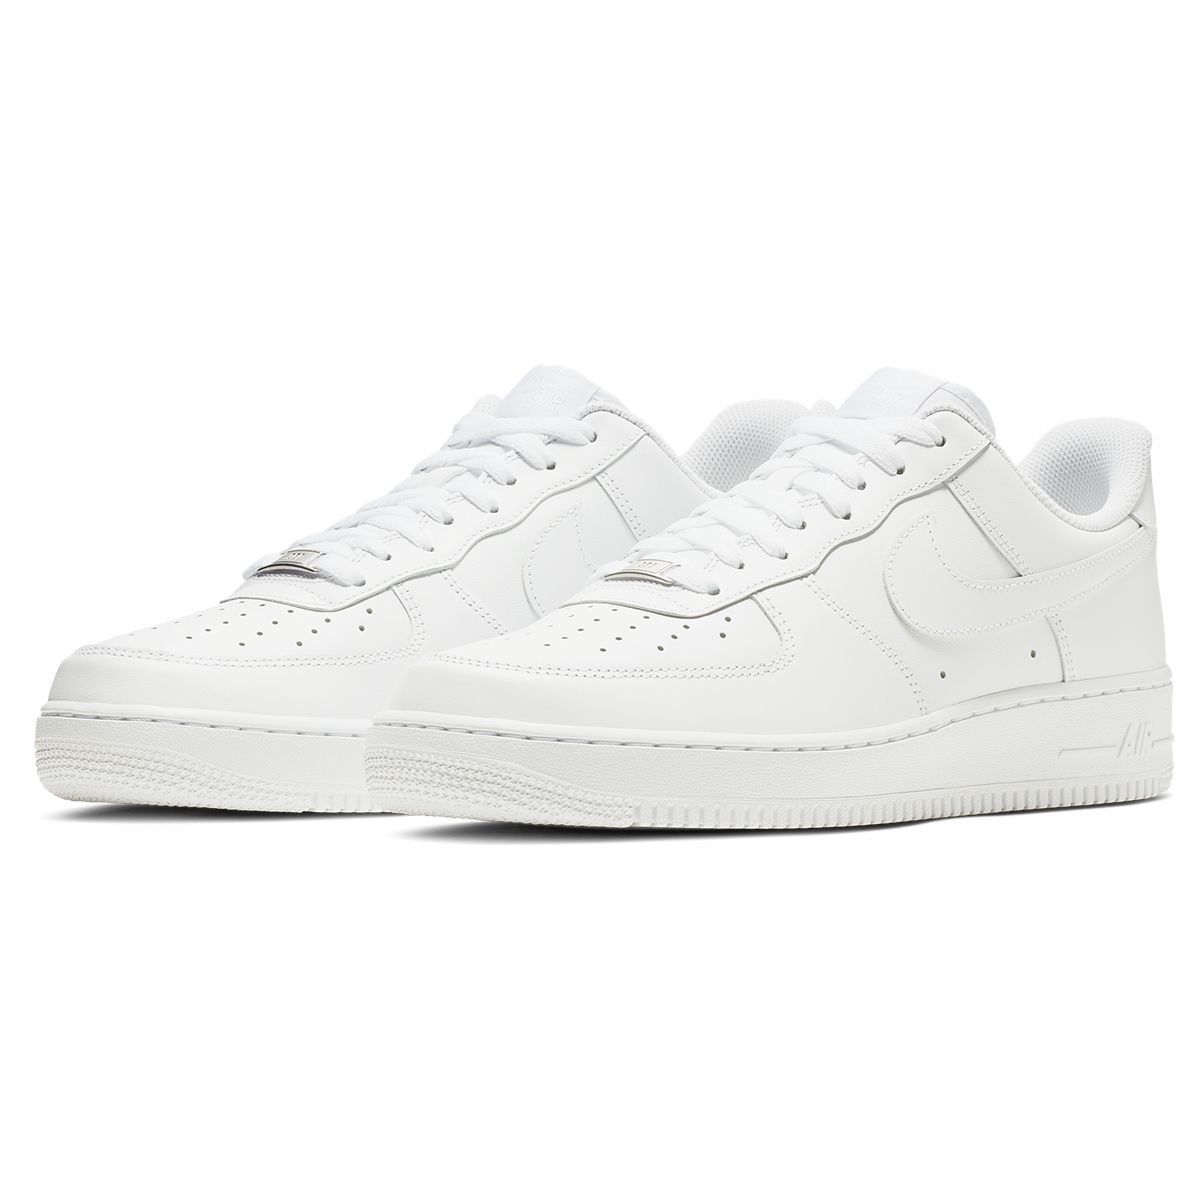 NIKE AIR FORCE 1 '07 / 111:WHITE-WHITE